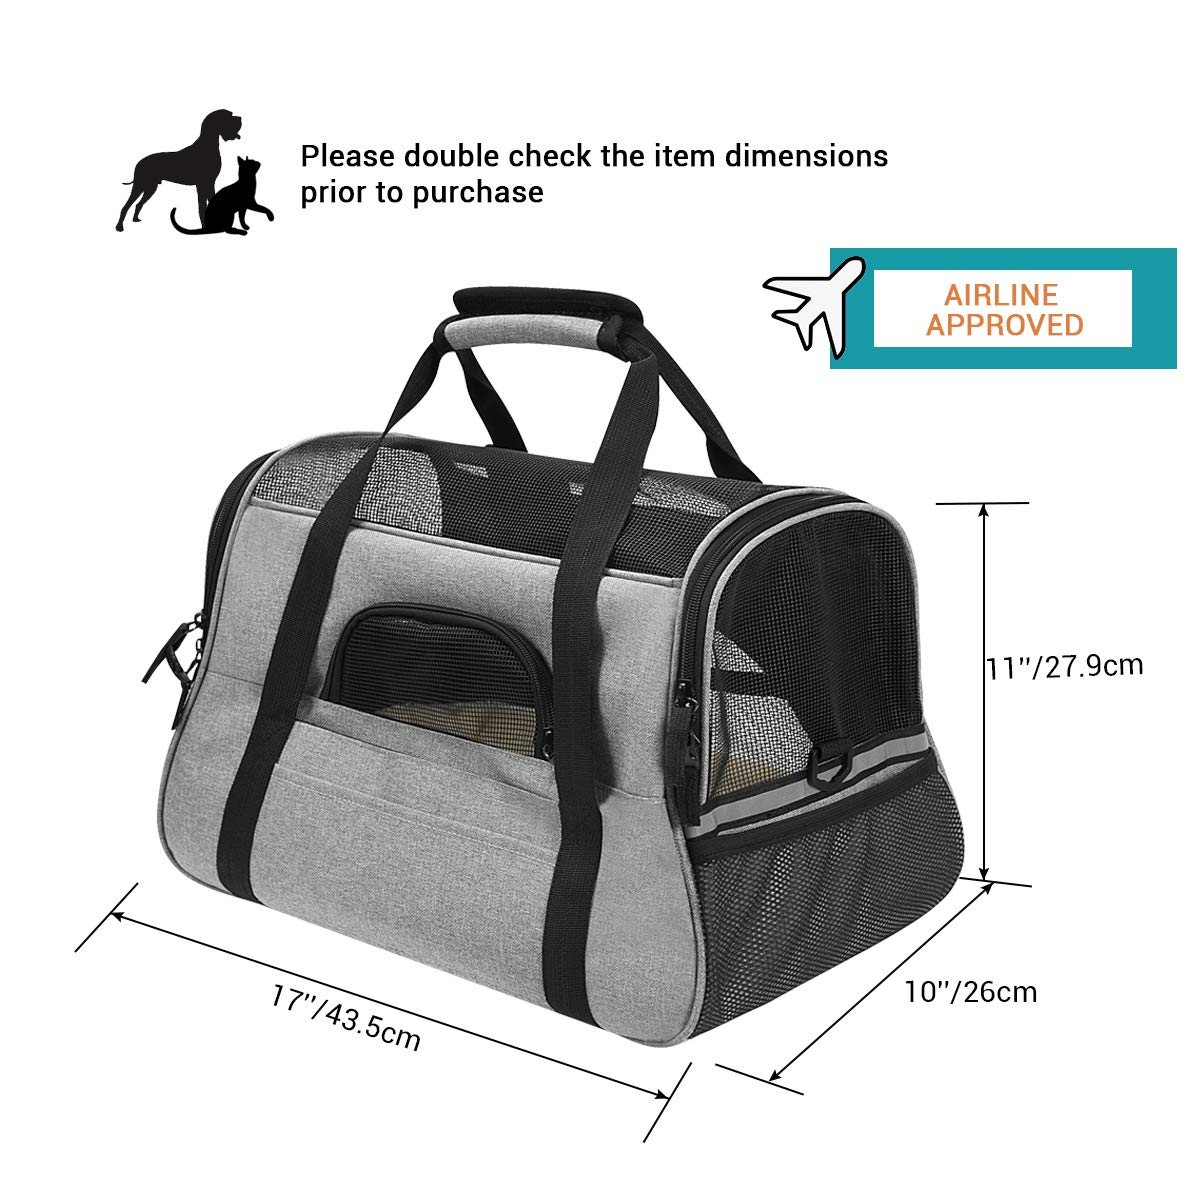 Airline Approved Pet Carrier Soft Side Portable Pet Travel Bag Mesh Windows Fleece Padding Under Seat Pet Bags Small Dogs Cats (Grey)